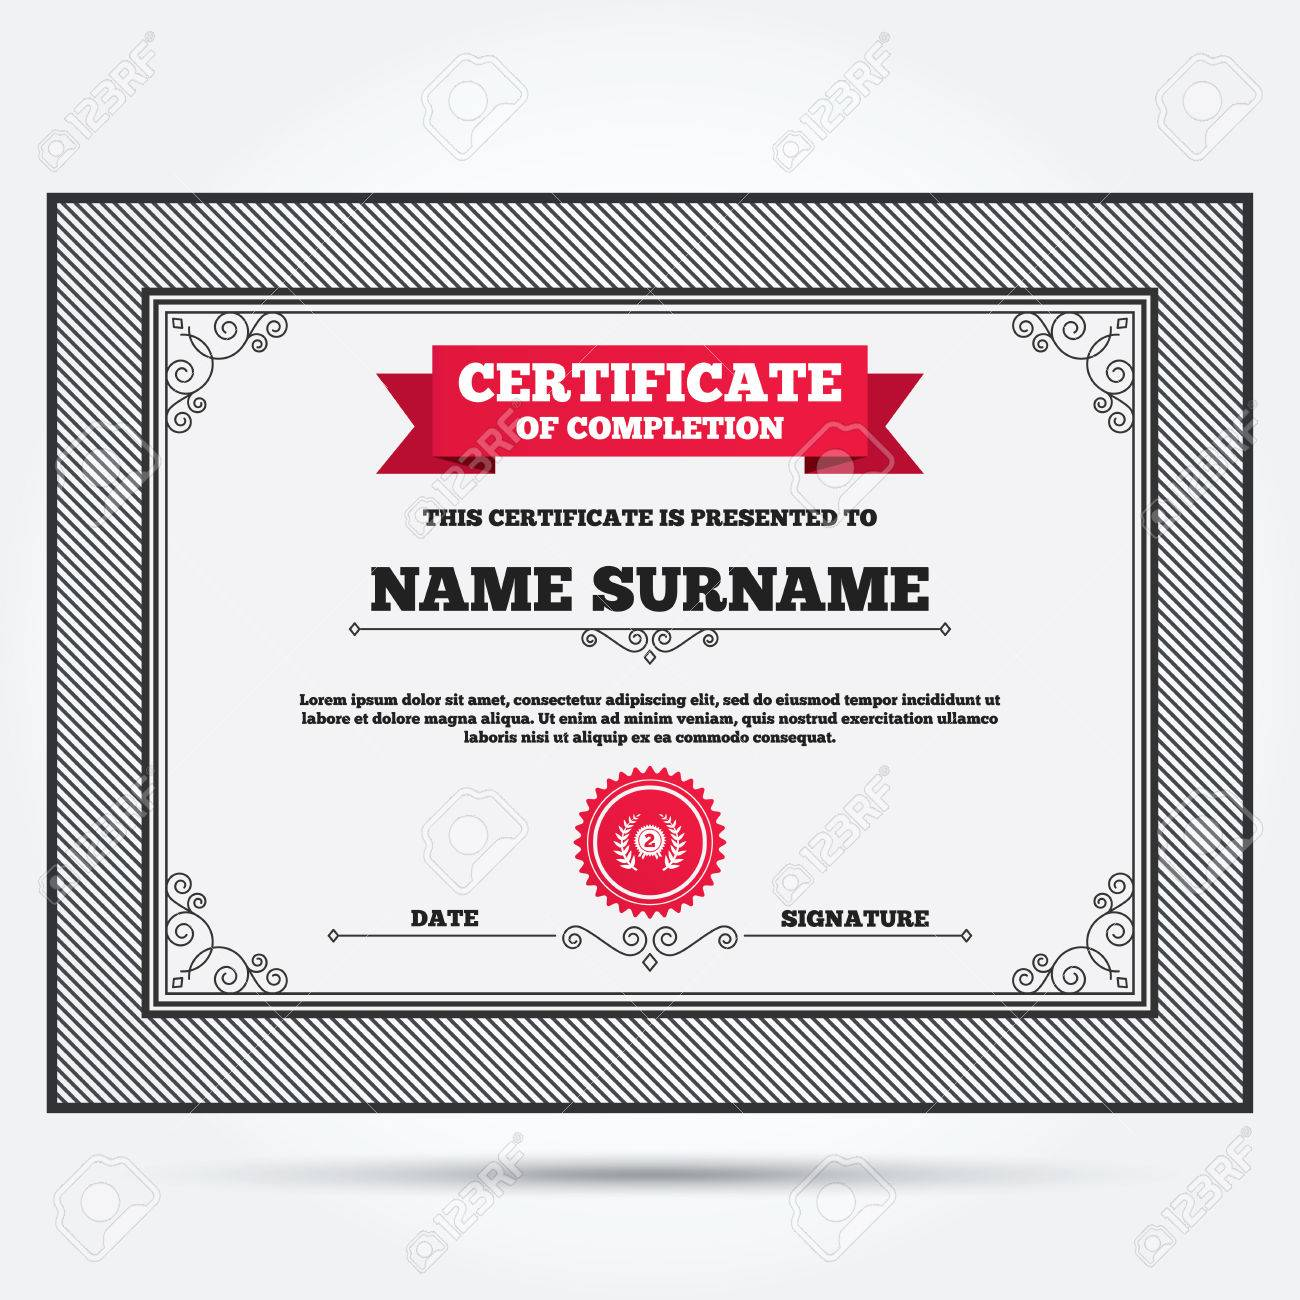 Winner certificates enomwarbco contact template word auto sale creative certificate template completion award word ticket 42646674 certificate of completion second place award sign icon prize for winner symbol laurel xflitez Image collections